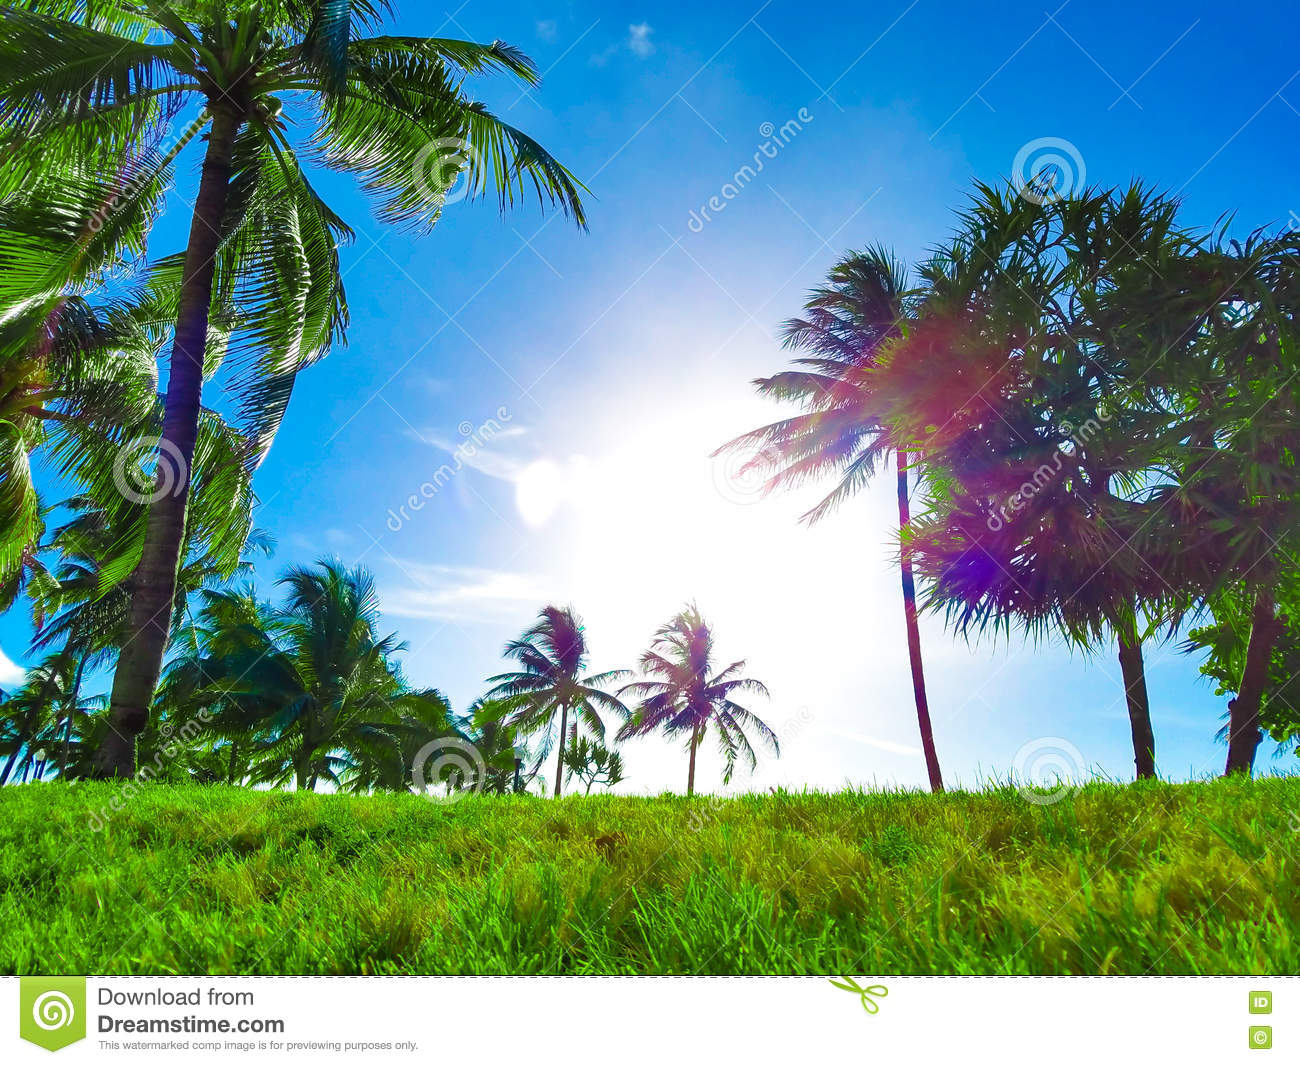 Beach Paradise, Blue Sky, Green & Alive Palms and Grass